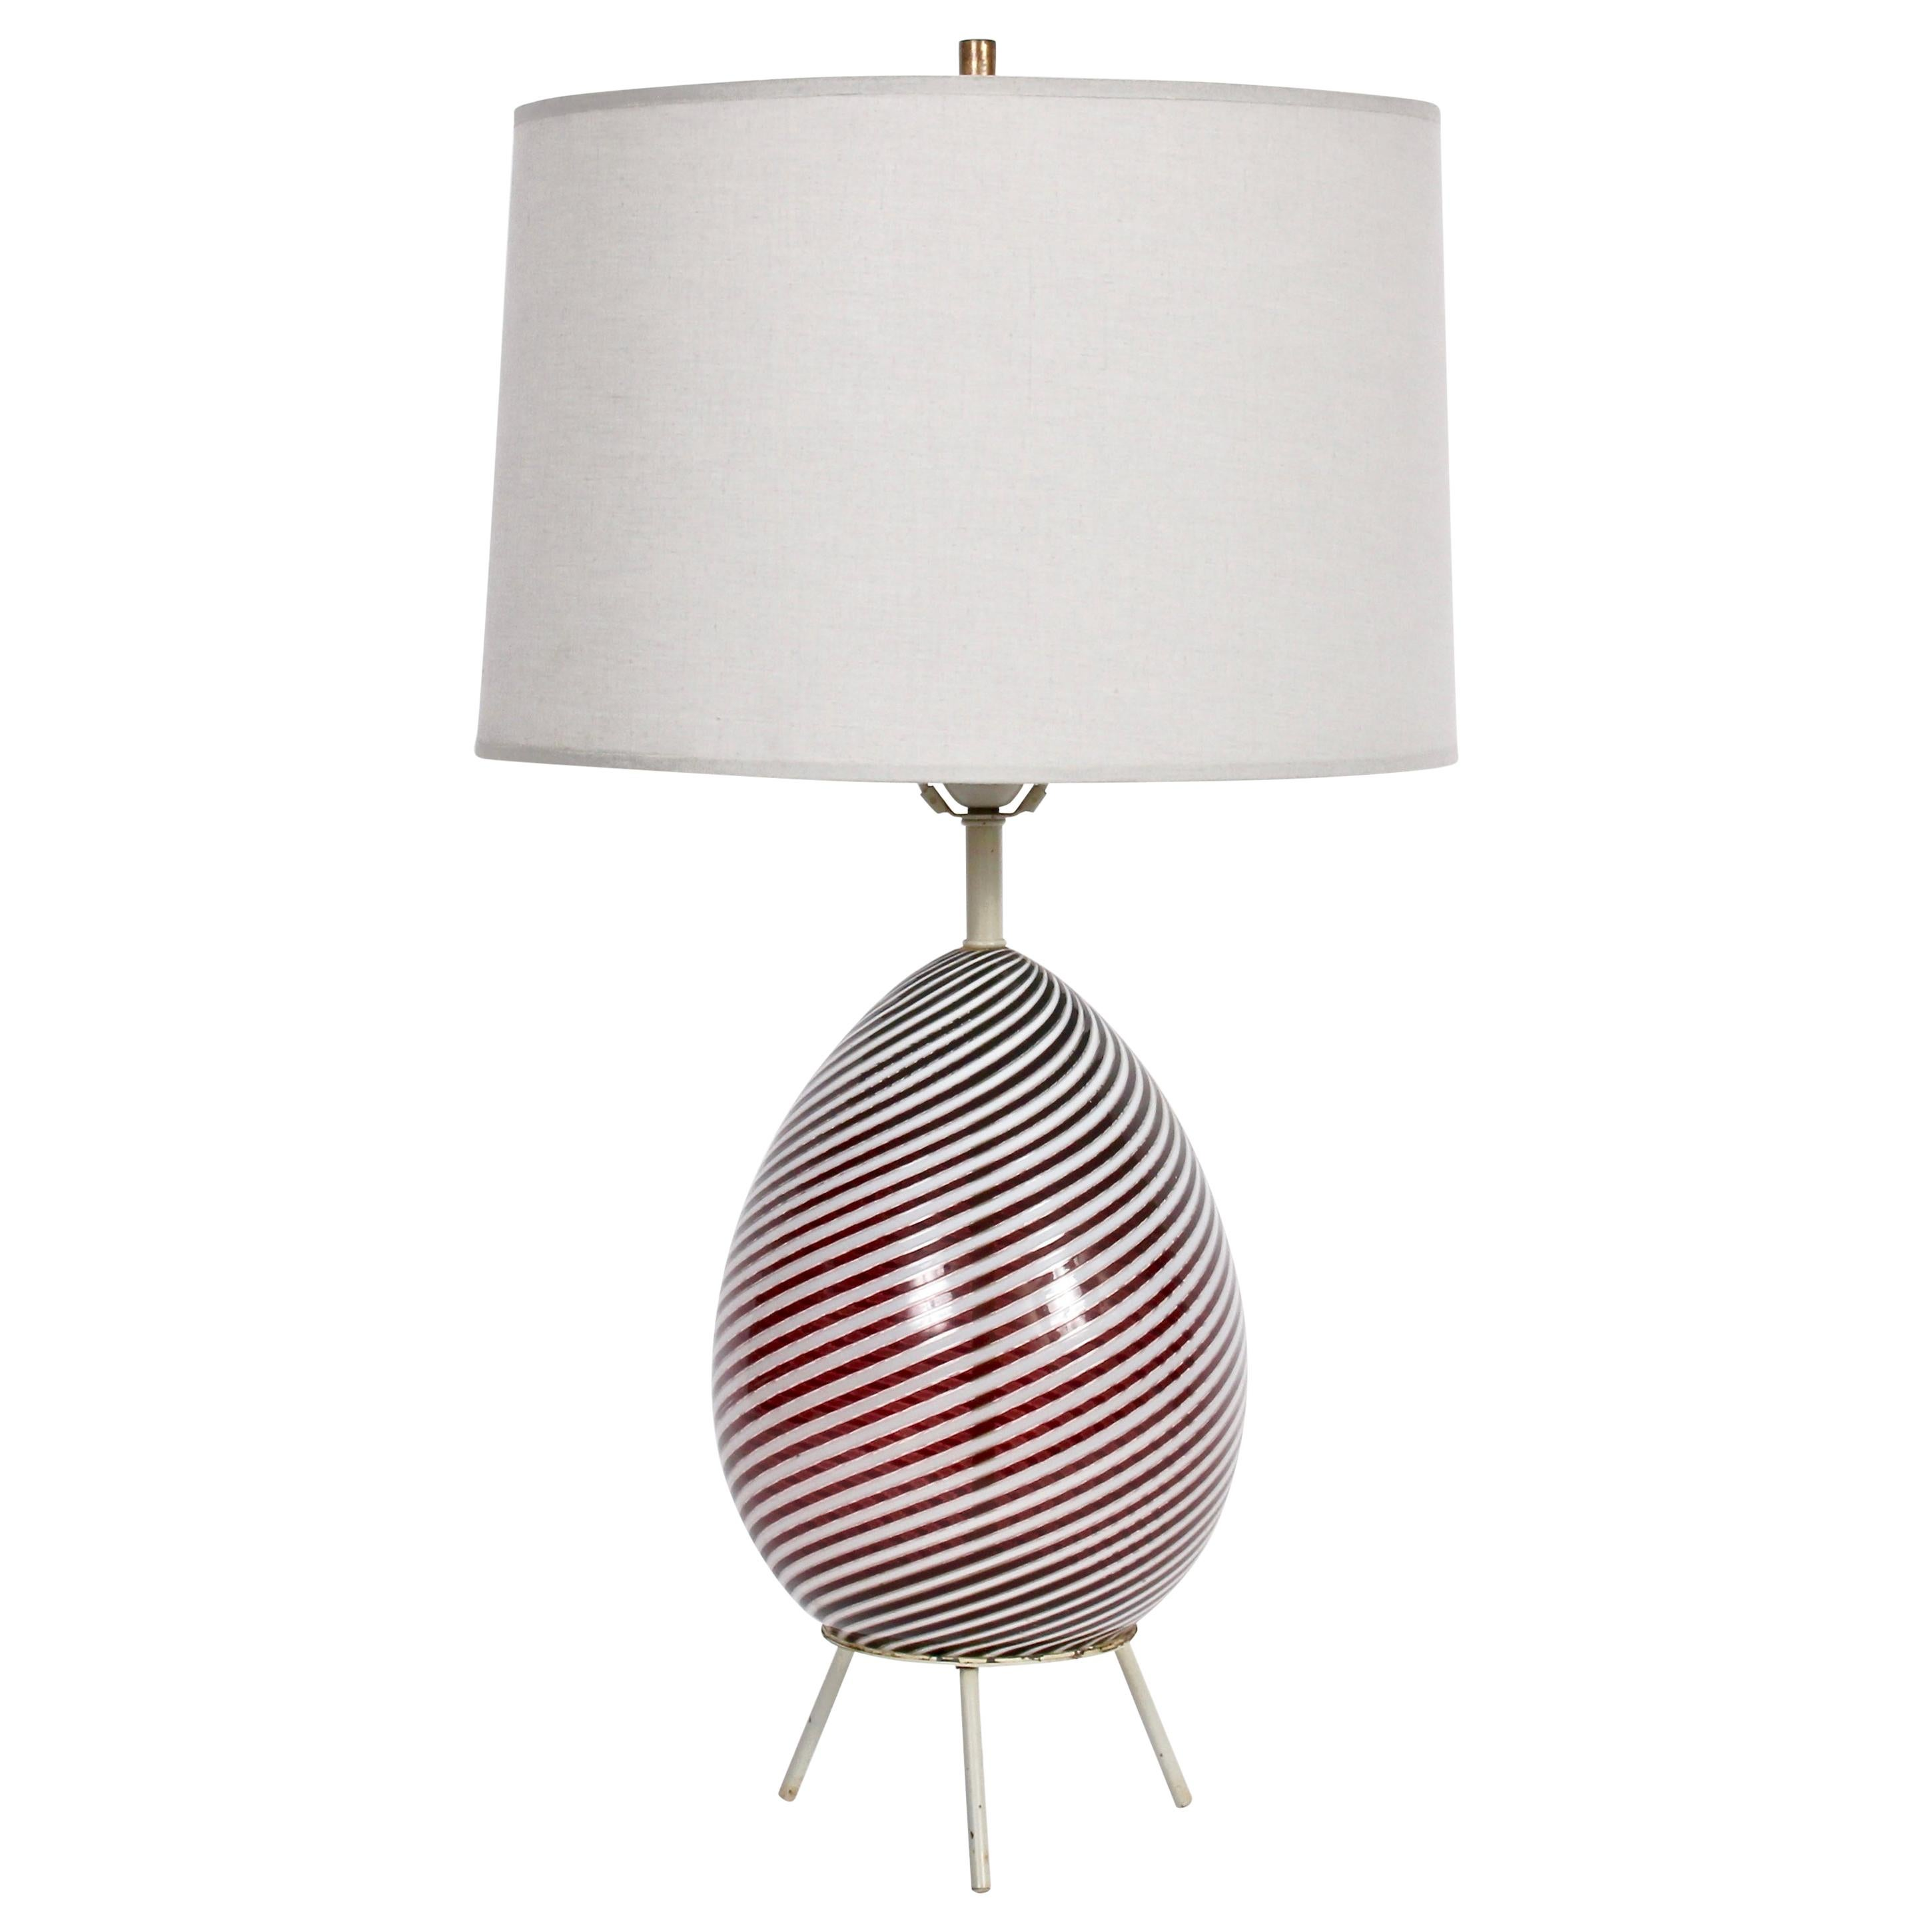 "Dino Martens for Aureliano Toso Cranberry ""Twist"" Table Lamp on Tripod Base"